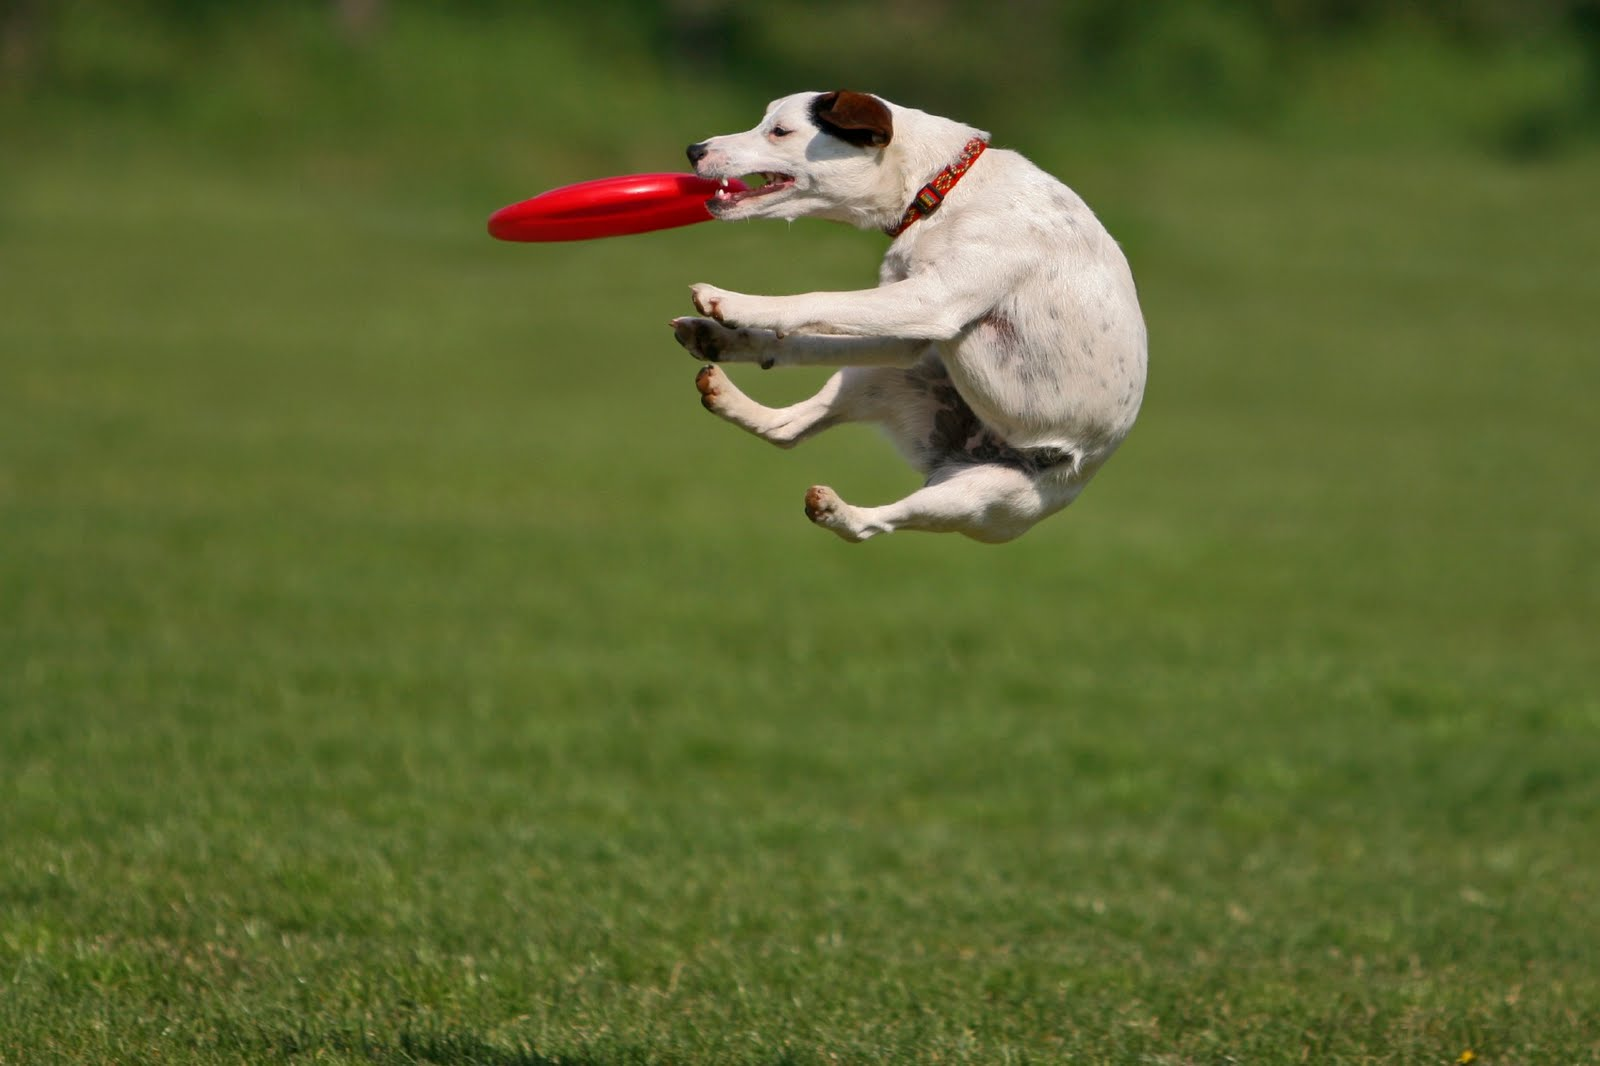 Such Good Dogs: Frisbees